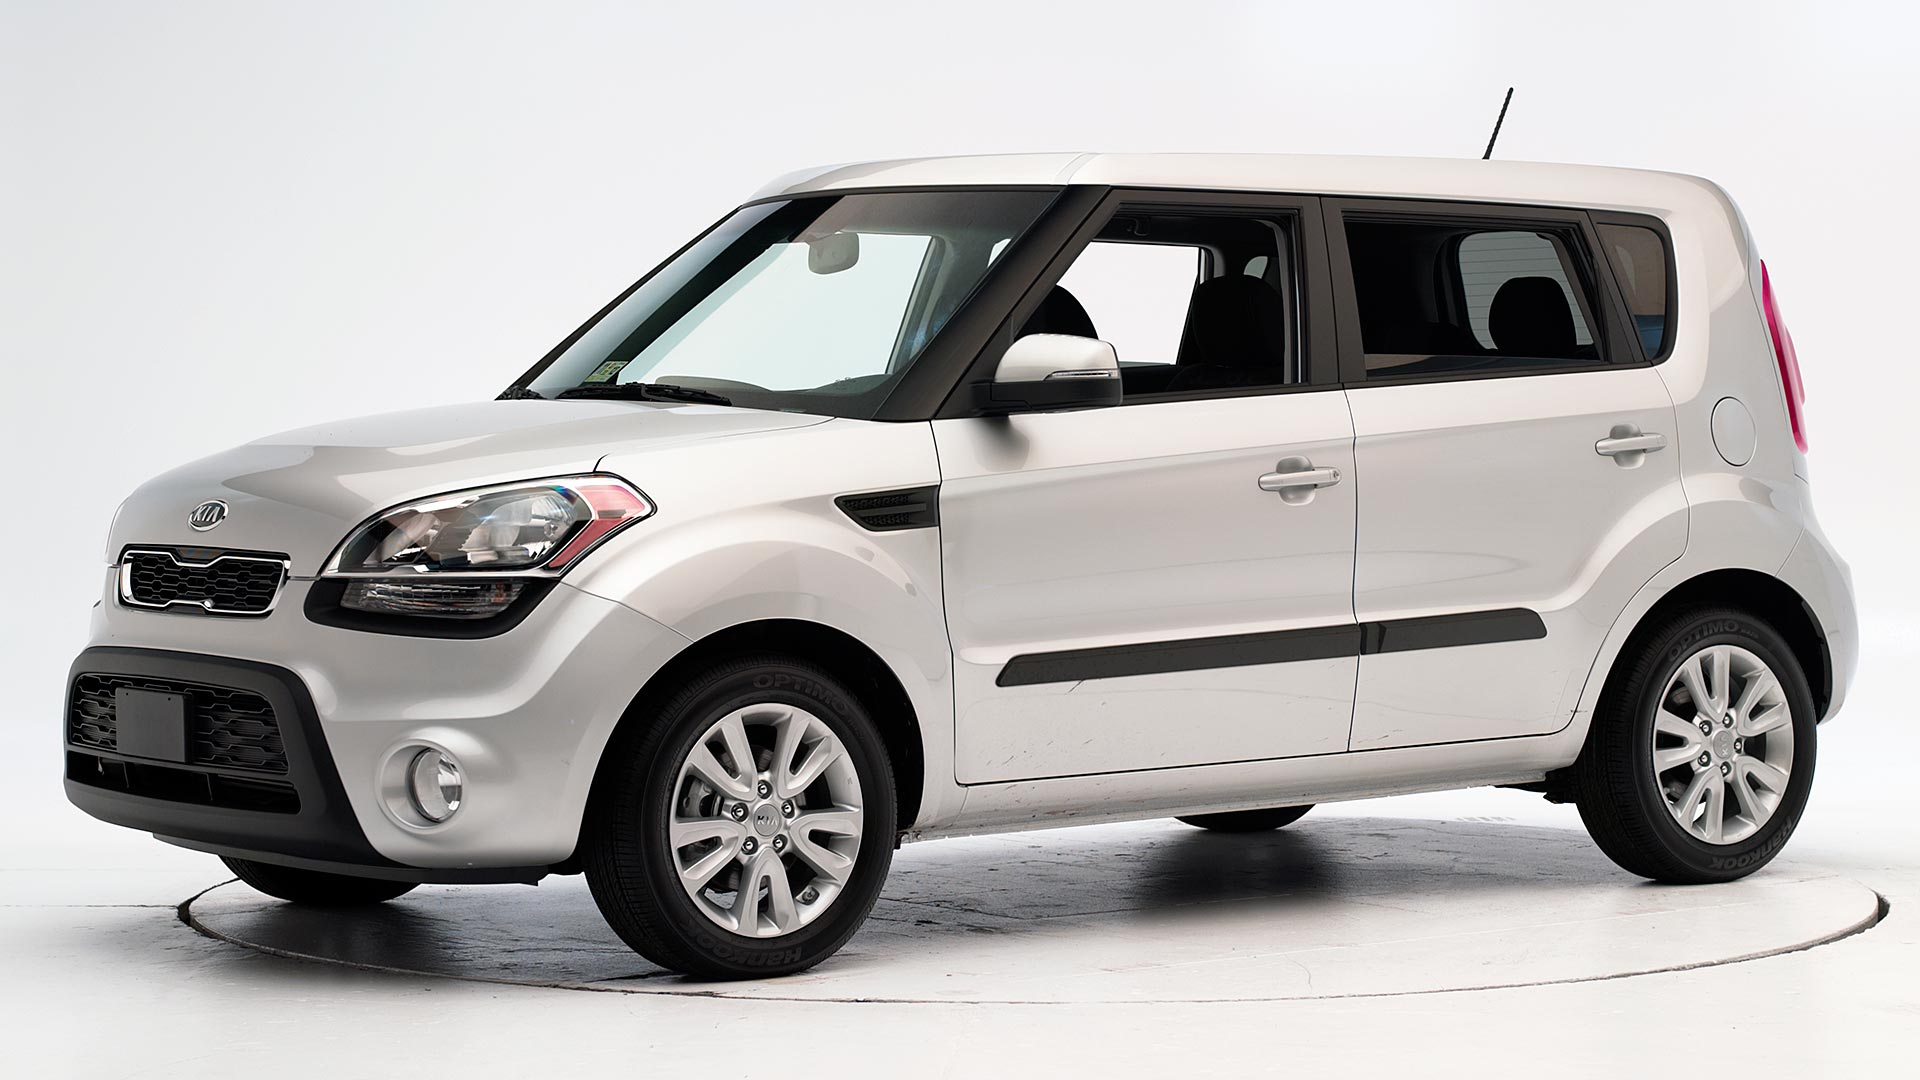 2013 Kia Soul 4-door wagon